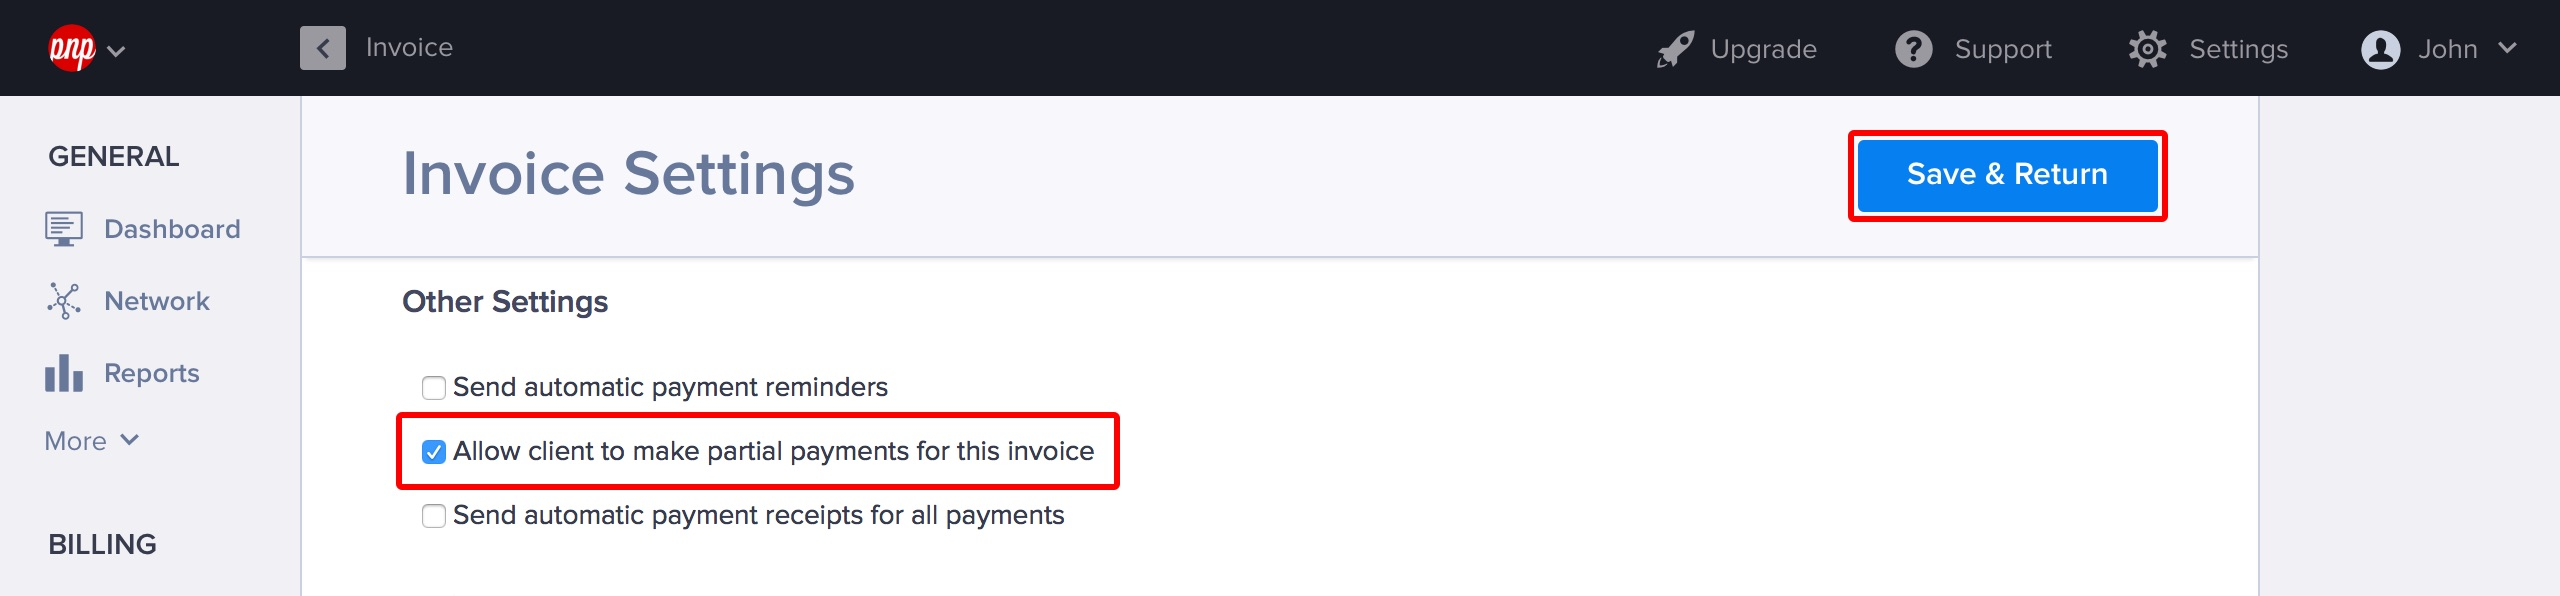 Enabling partial payments from Invoice Settings